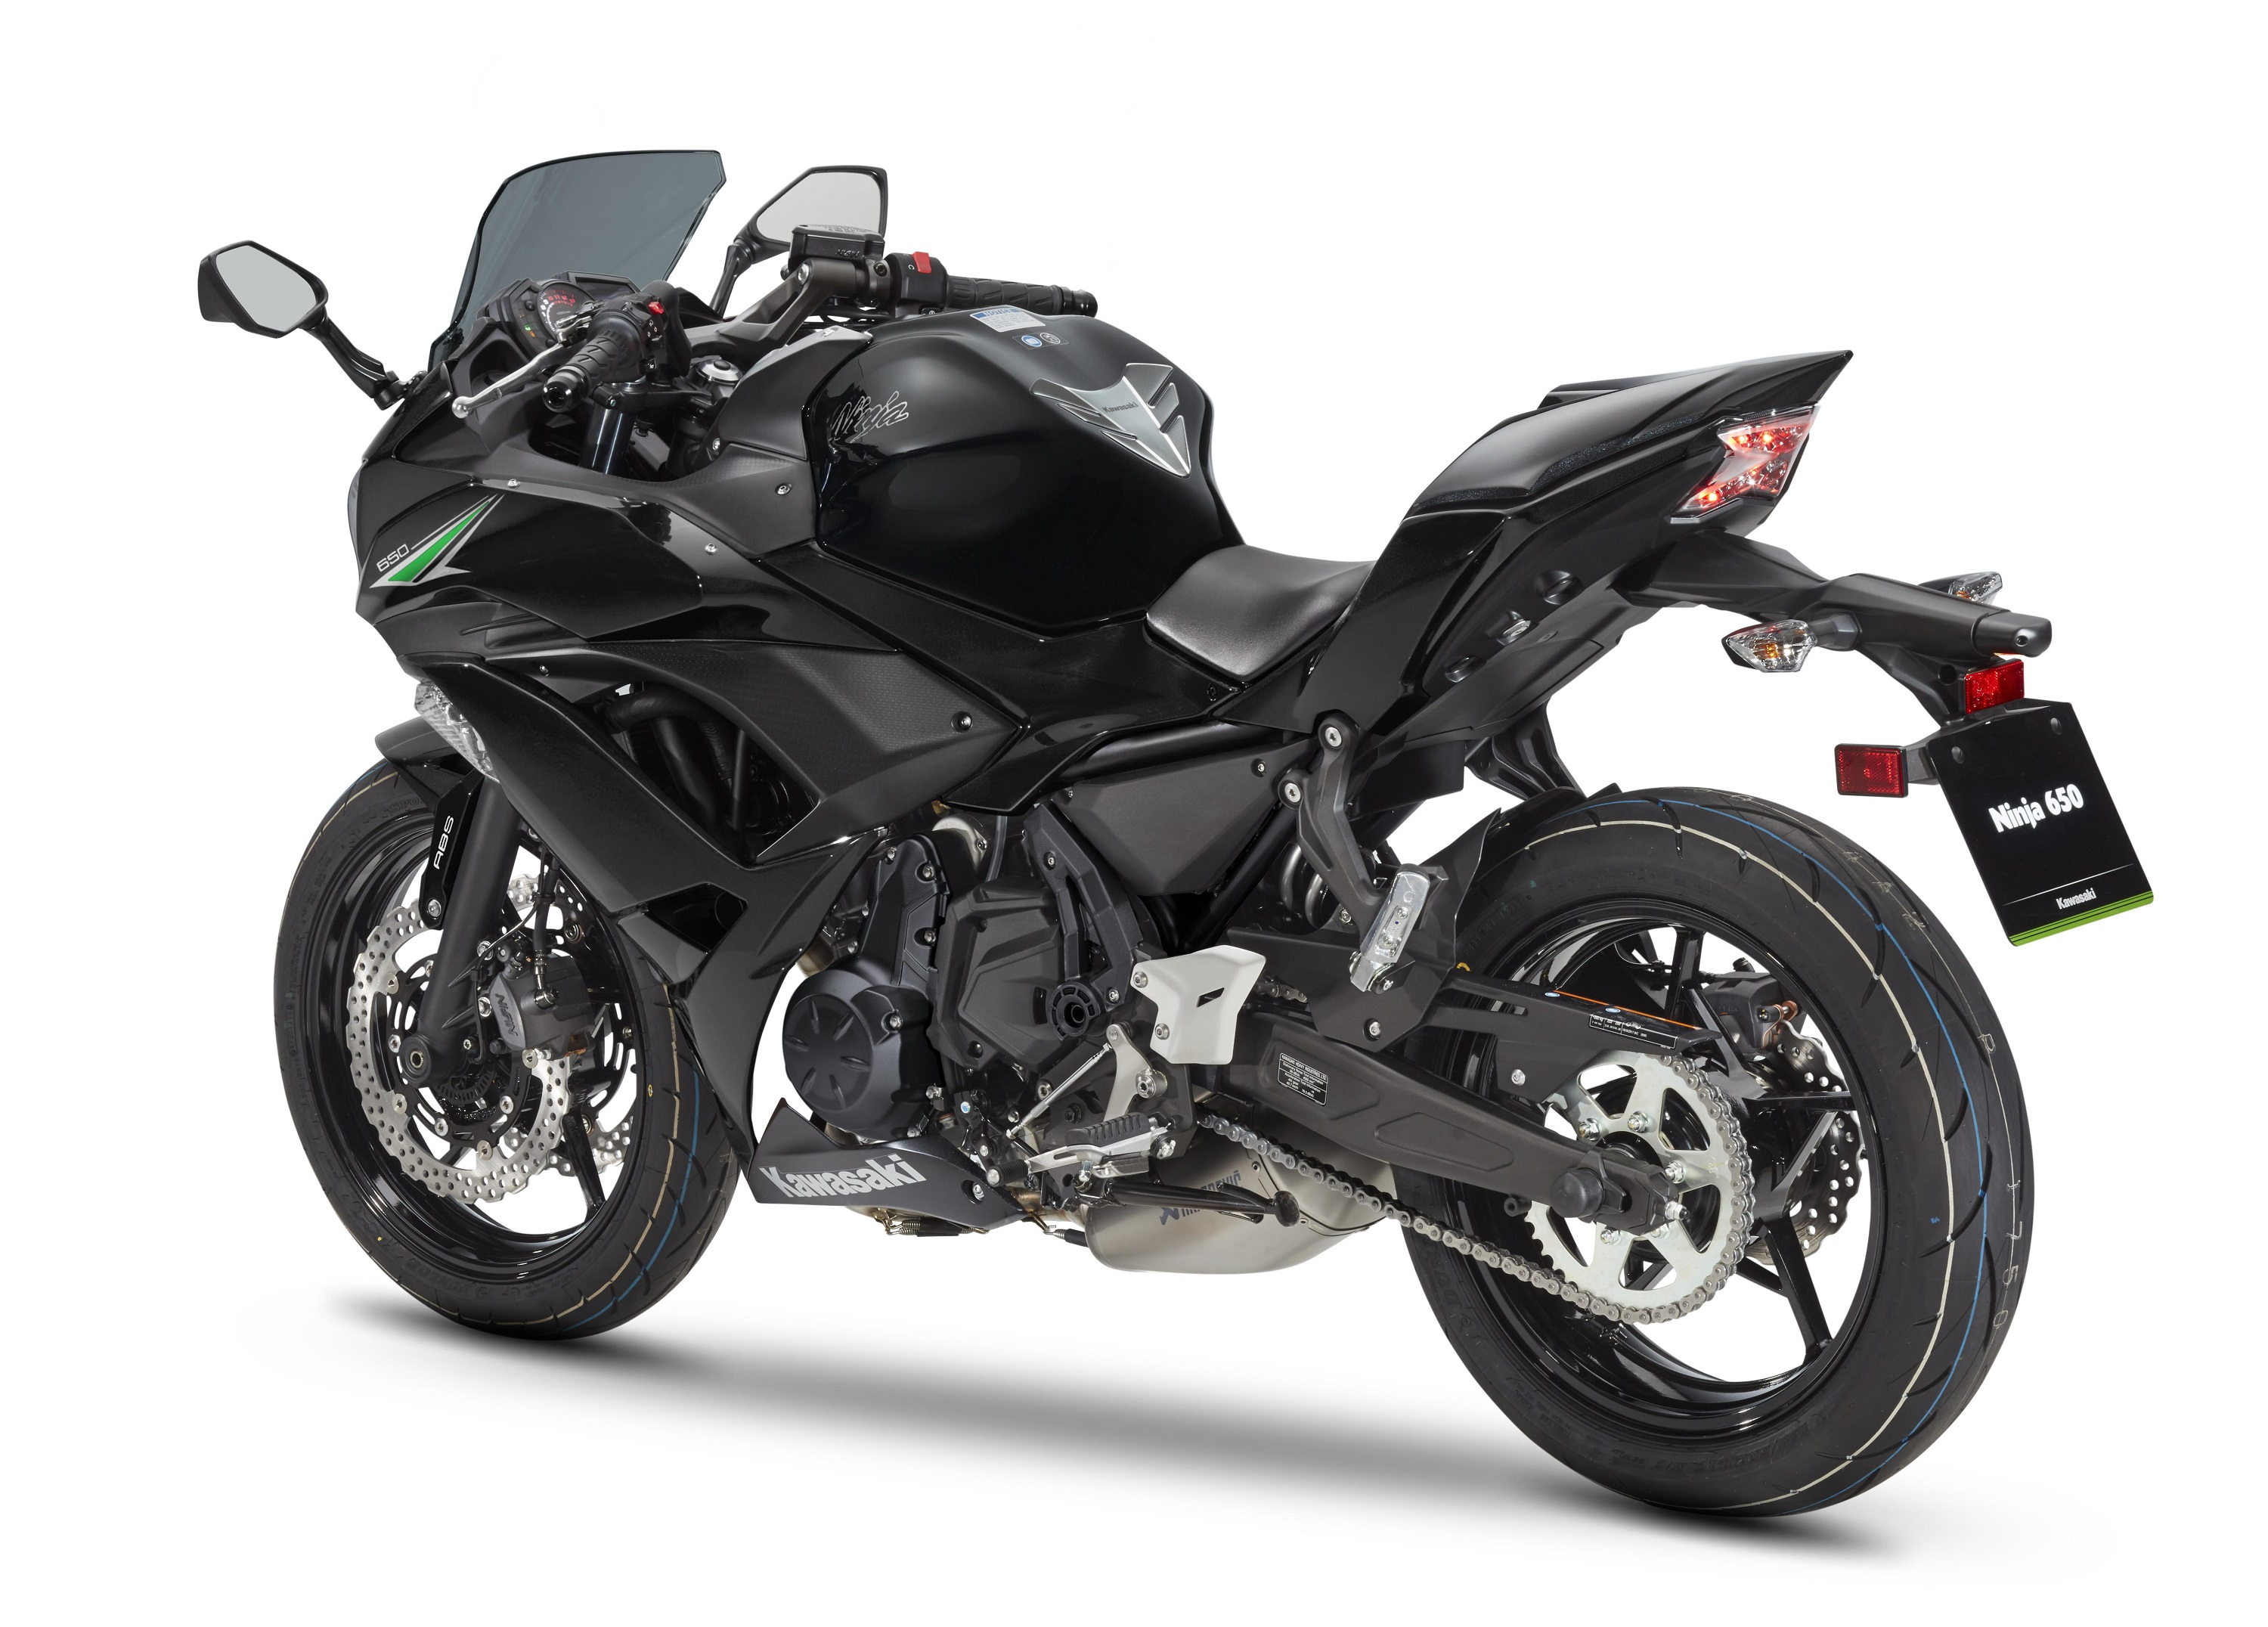 Kawasaki Ninja 650 O For Sale Price Guide The Bike Market